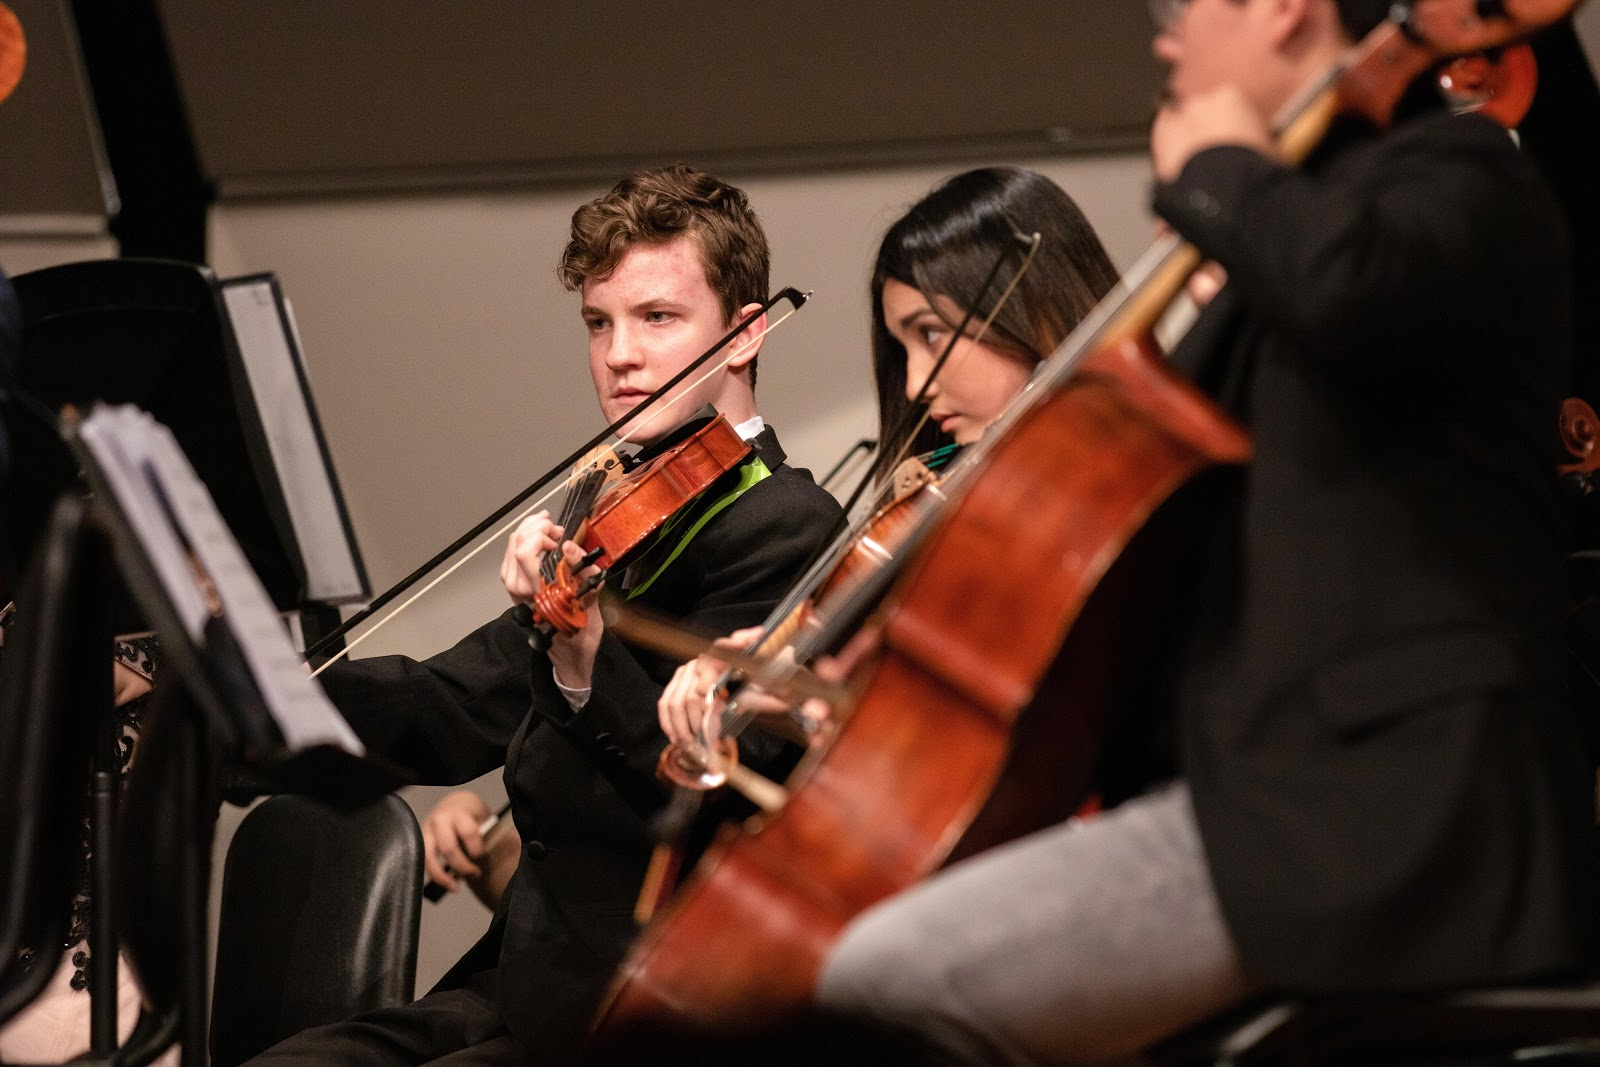 students in orchestra playing violins